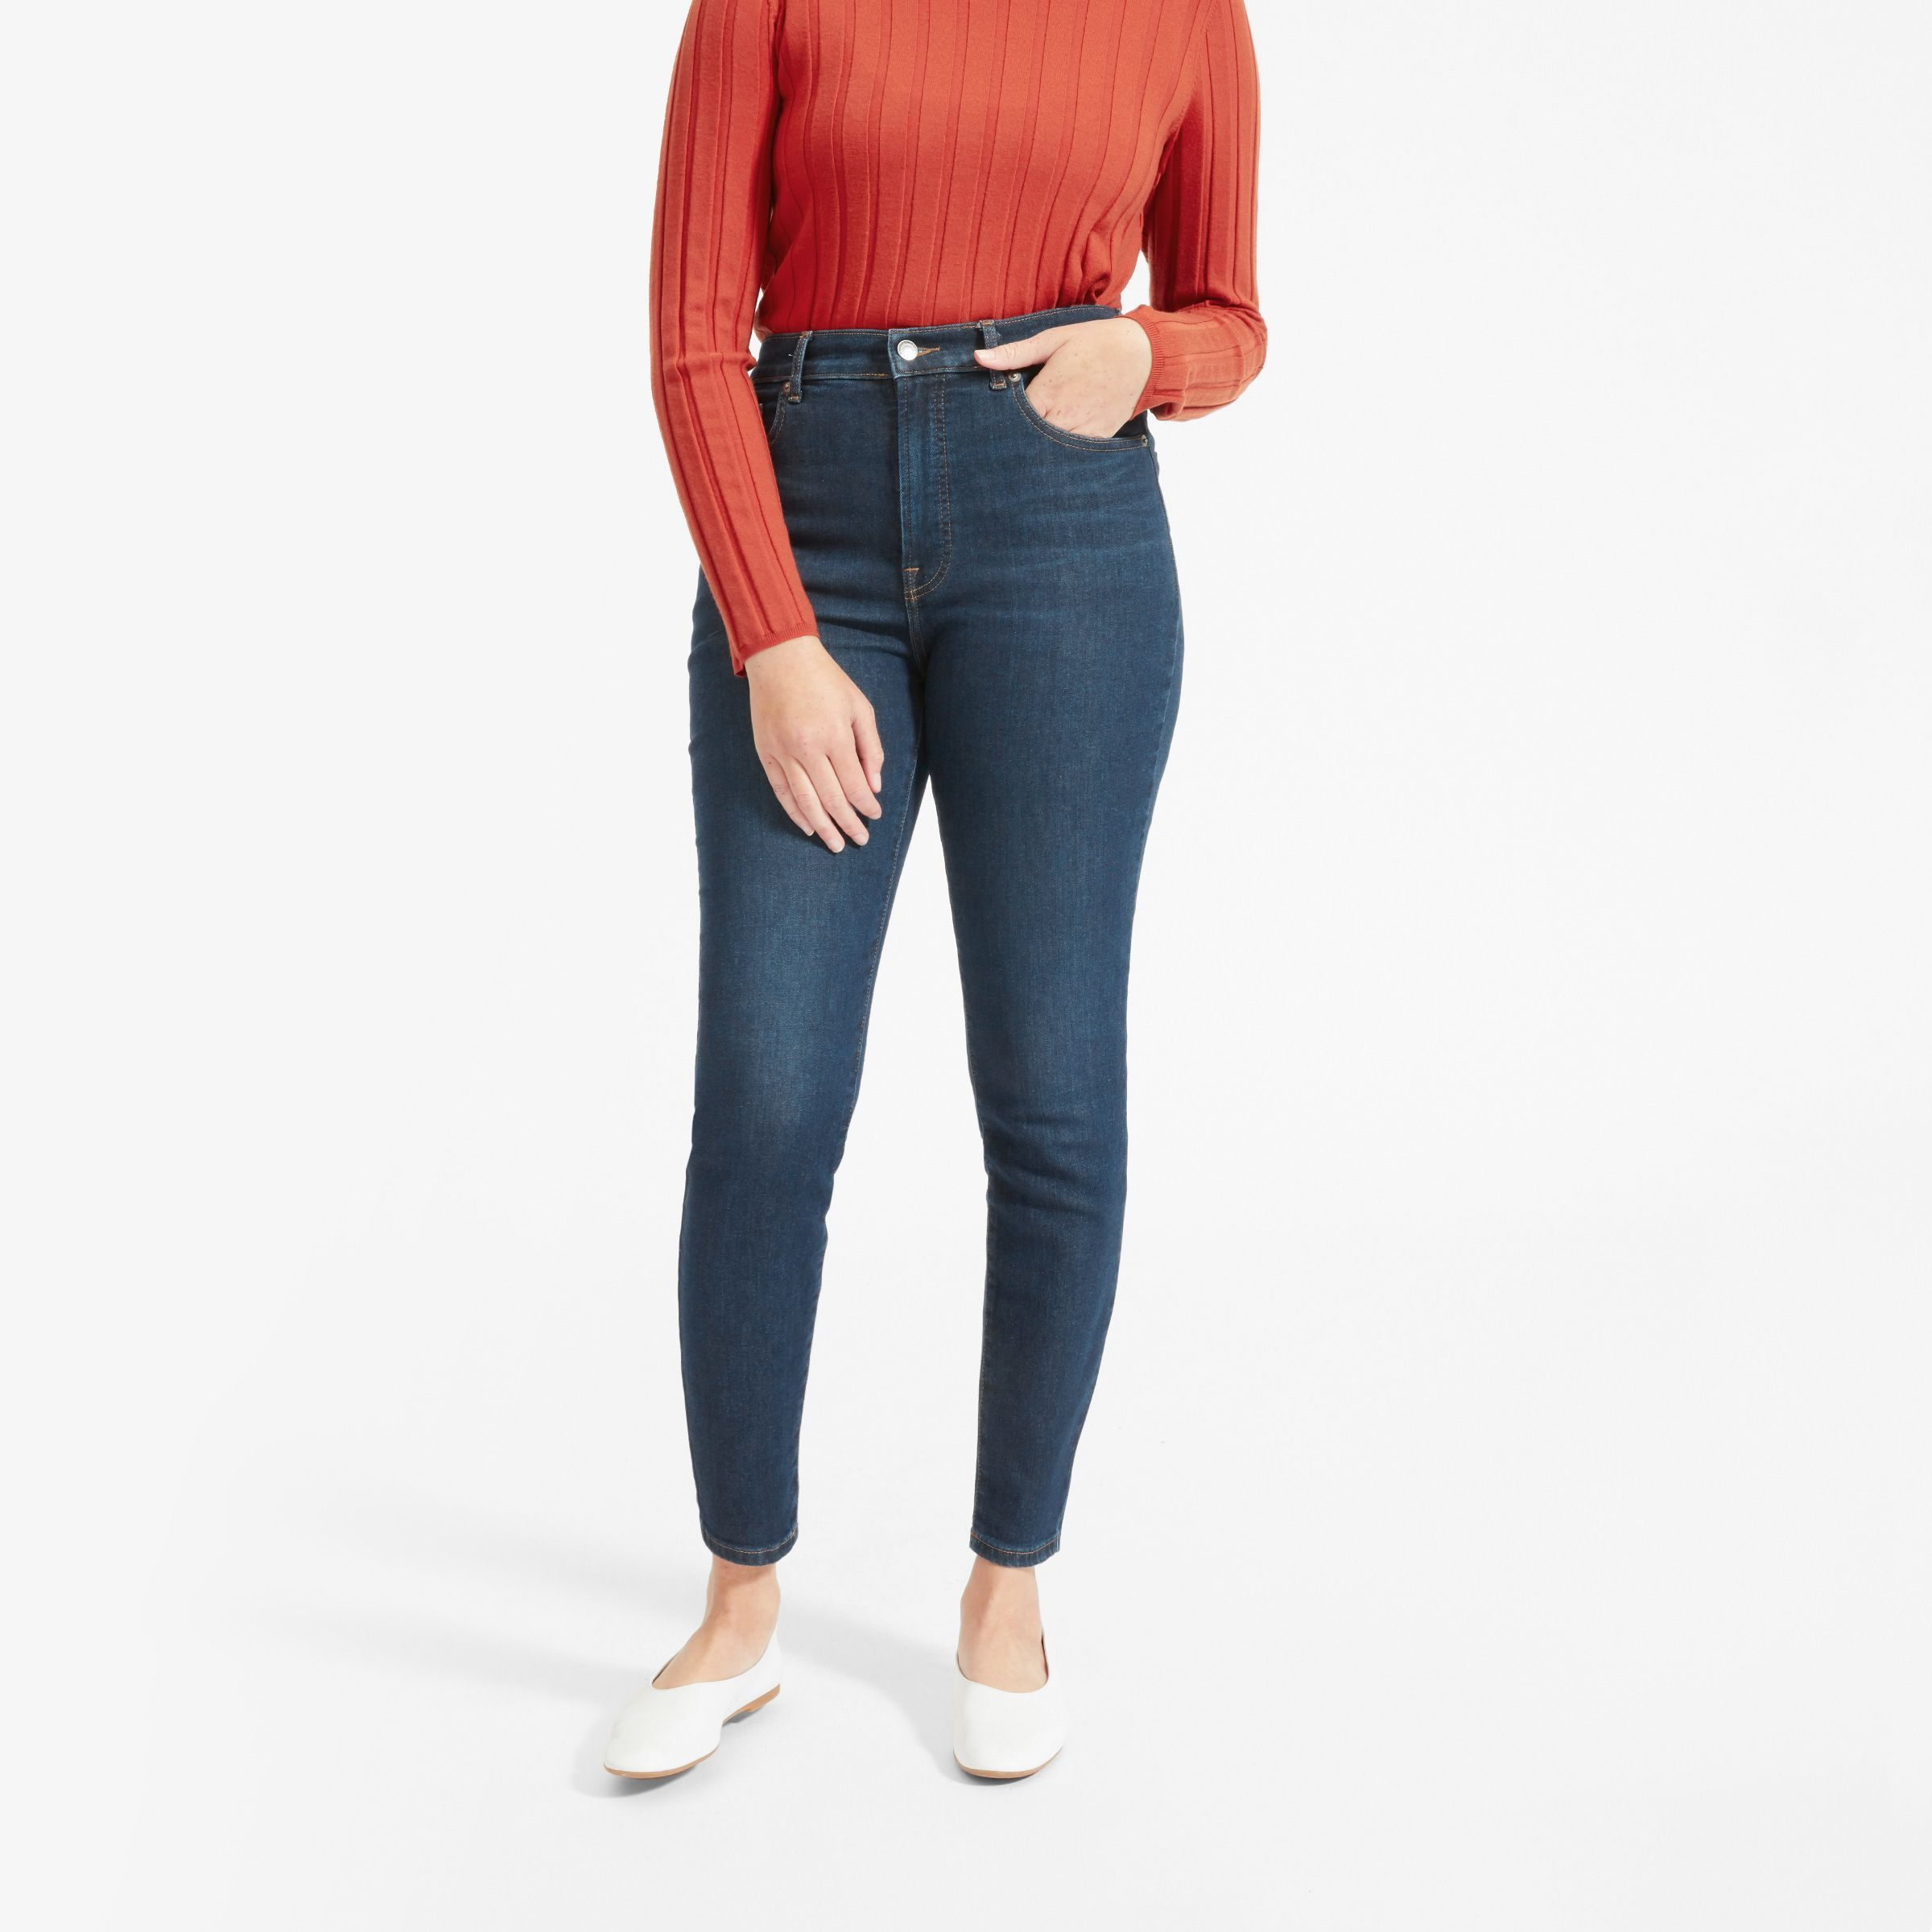 0a449122 20 Best High Waisted Jeans for Women — 2019's Top High-Waisted Denim Brands